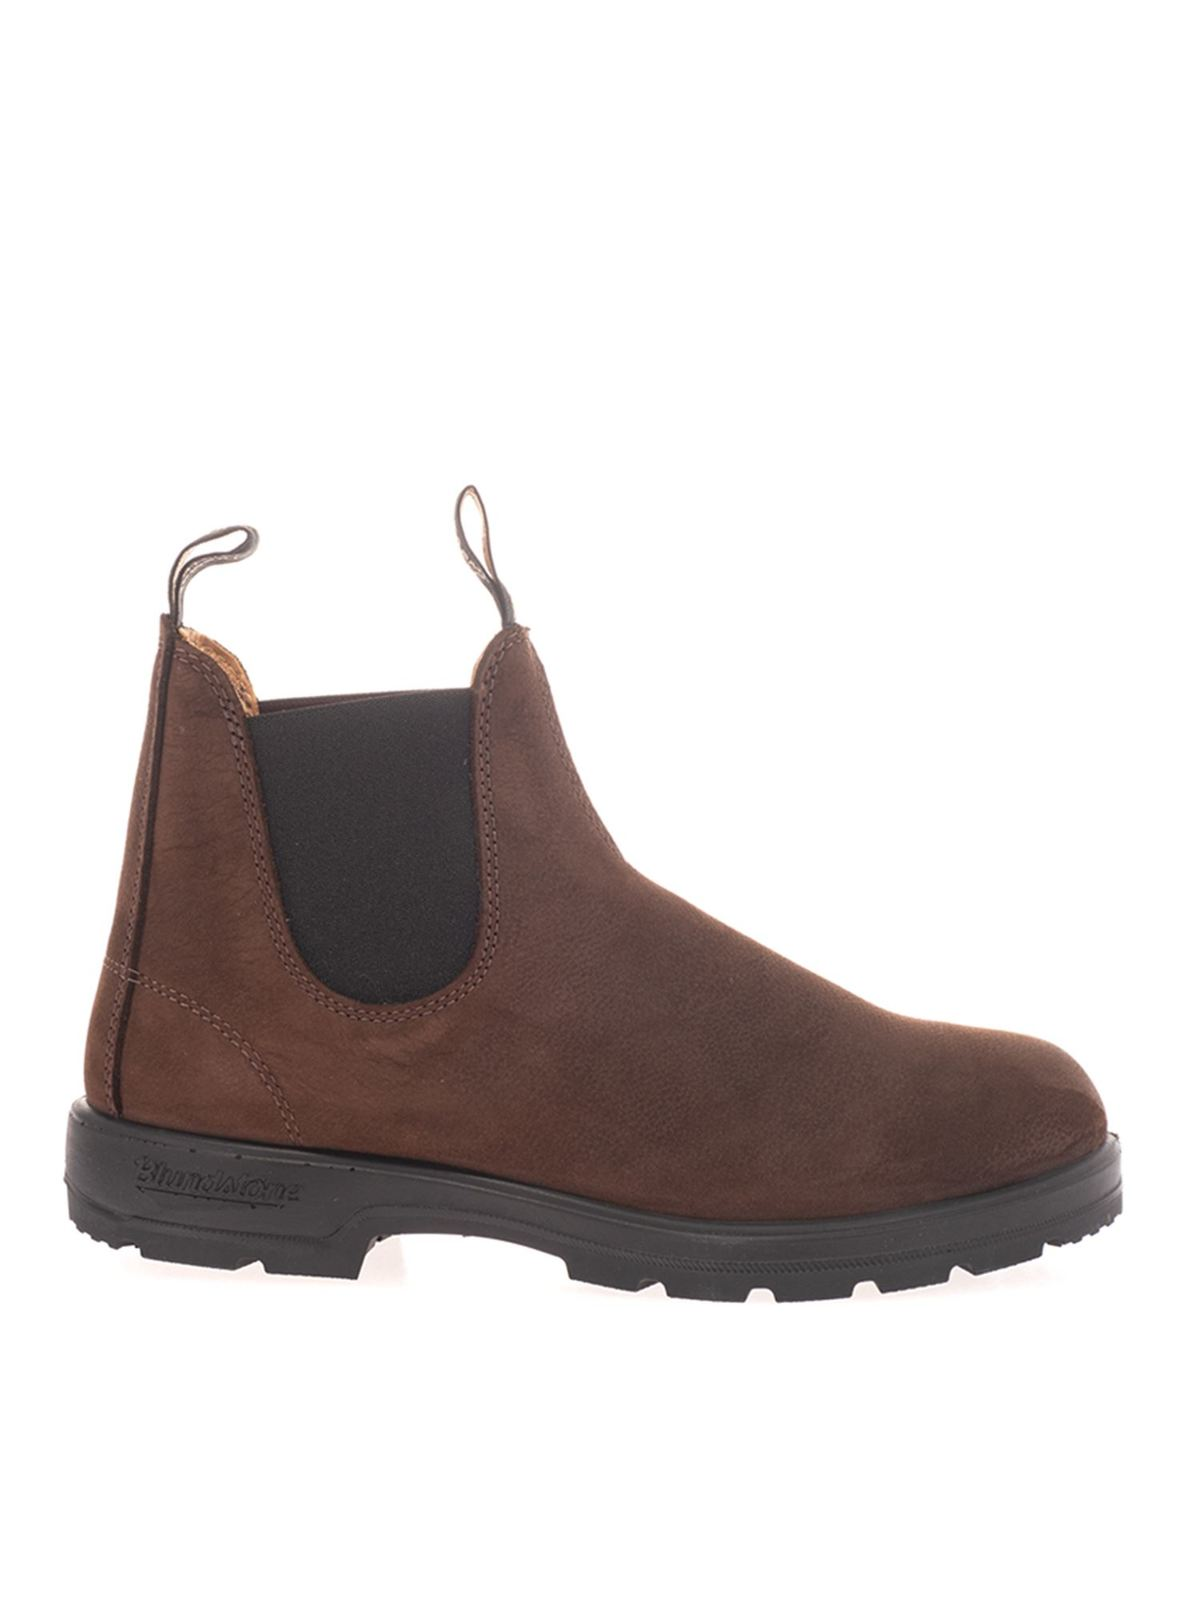 Blundstone Ankle highs SUEDE ANKLE BOOTS IN BROWN